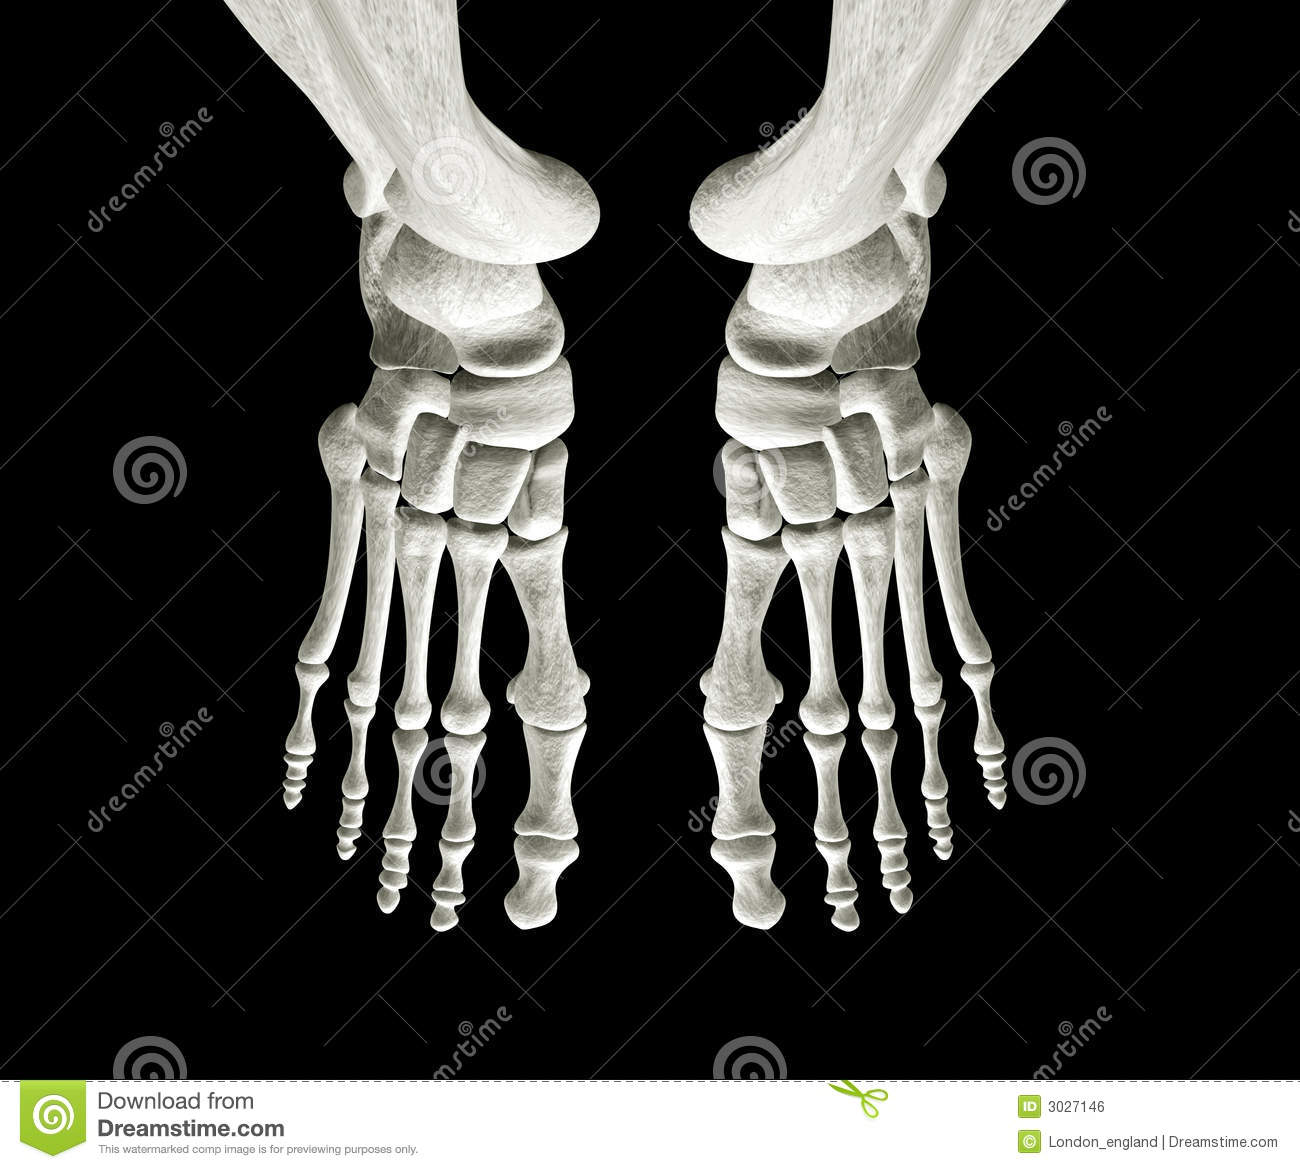 Foot Bones stock illustration. Illustration of broken - 3027146